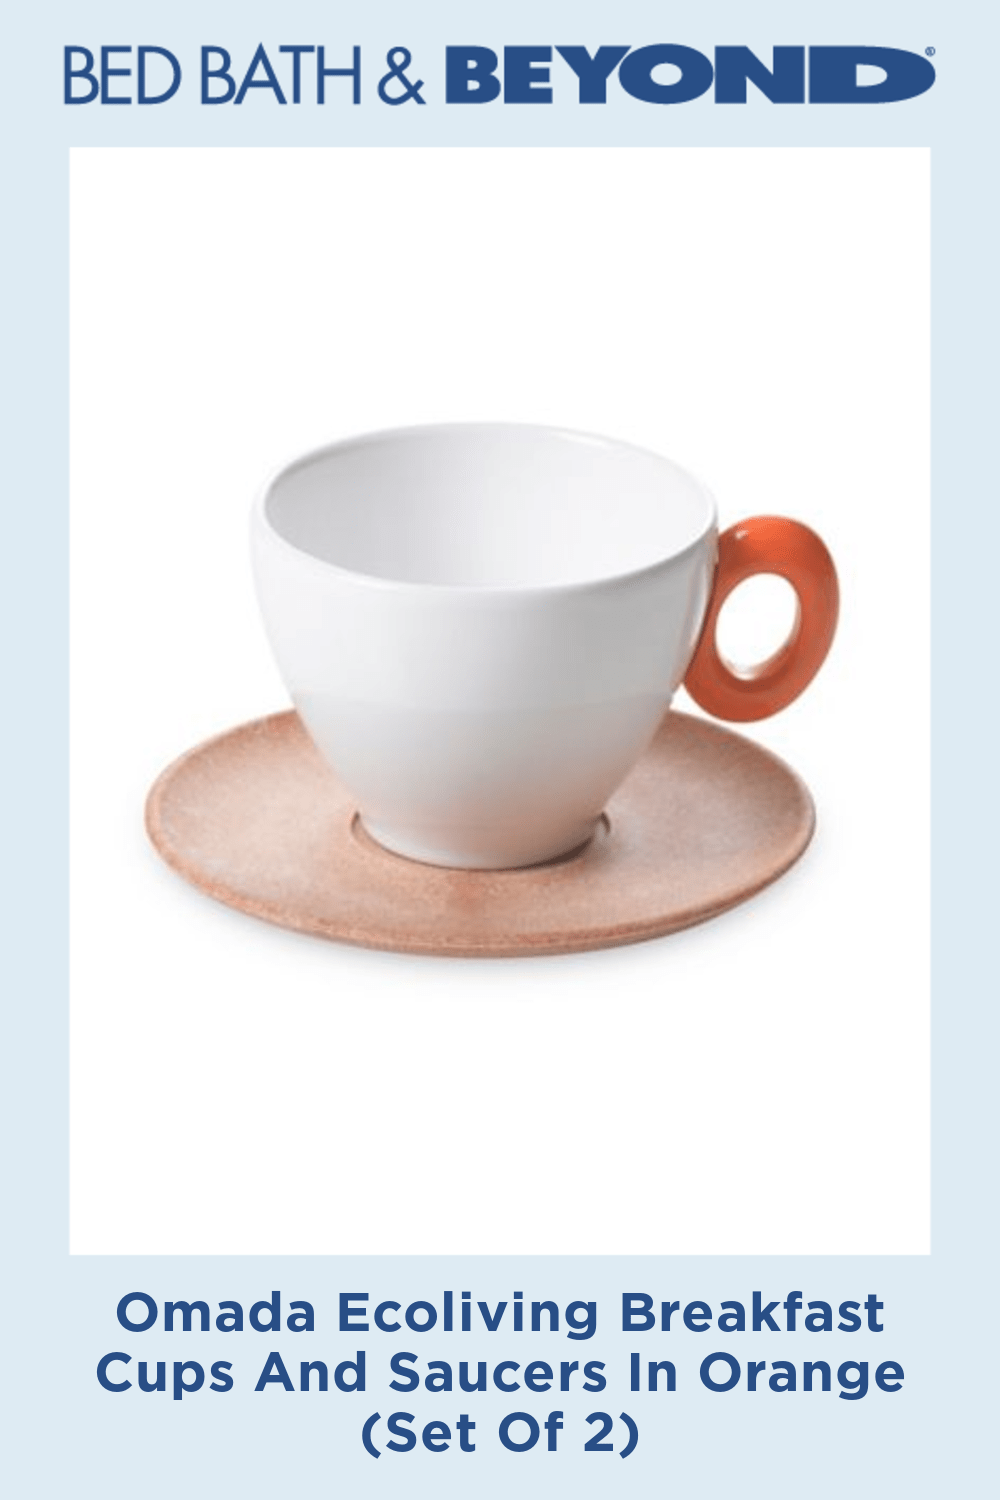 Omada Ecoliving Breakfast Cups And Saucers In Orange (Set Of 2)